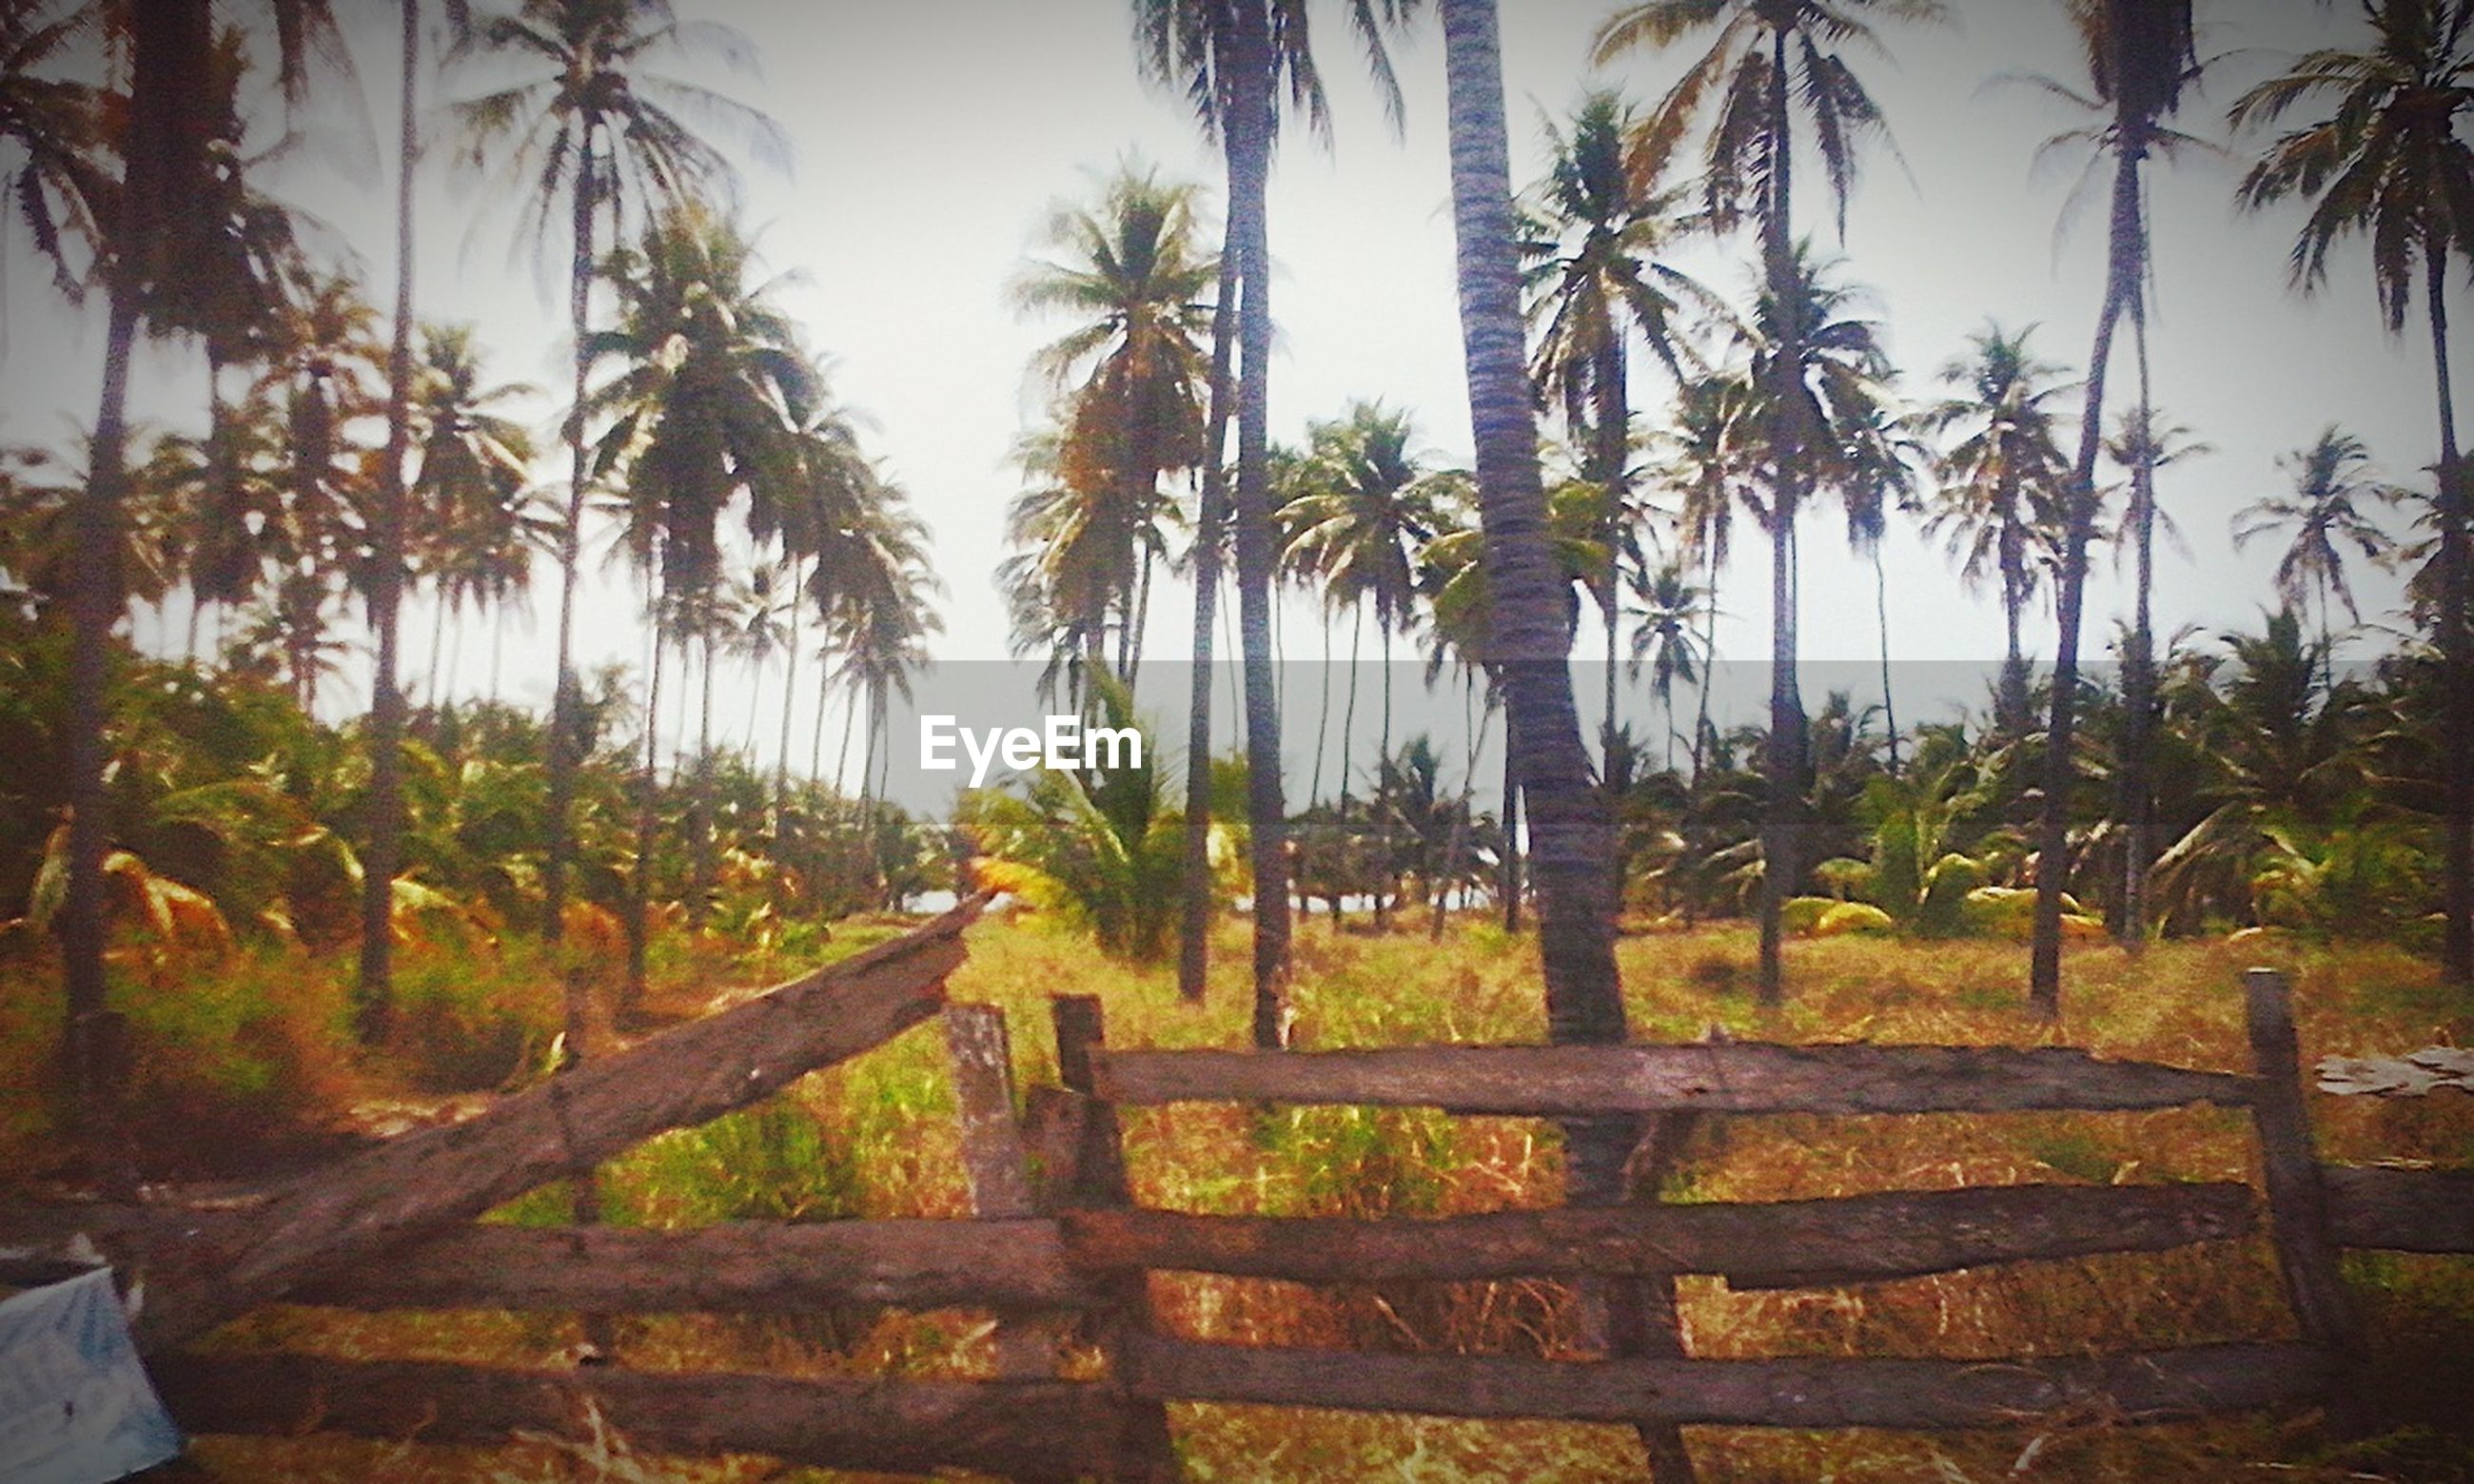 tree, growth, palm tree, tranquility, tranquil scene, nature, tree trunk, green color, beauty in nature, scenics, sunlight, plant, sky, landscape, field, day, park - man made space, branch, outdoors, no people